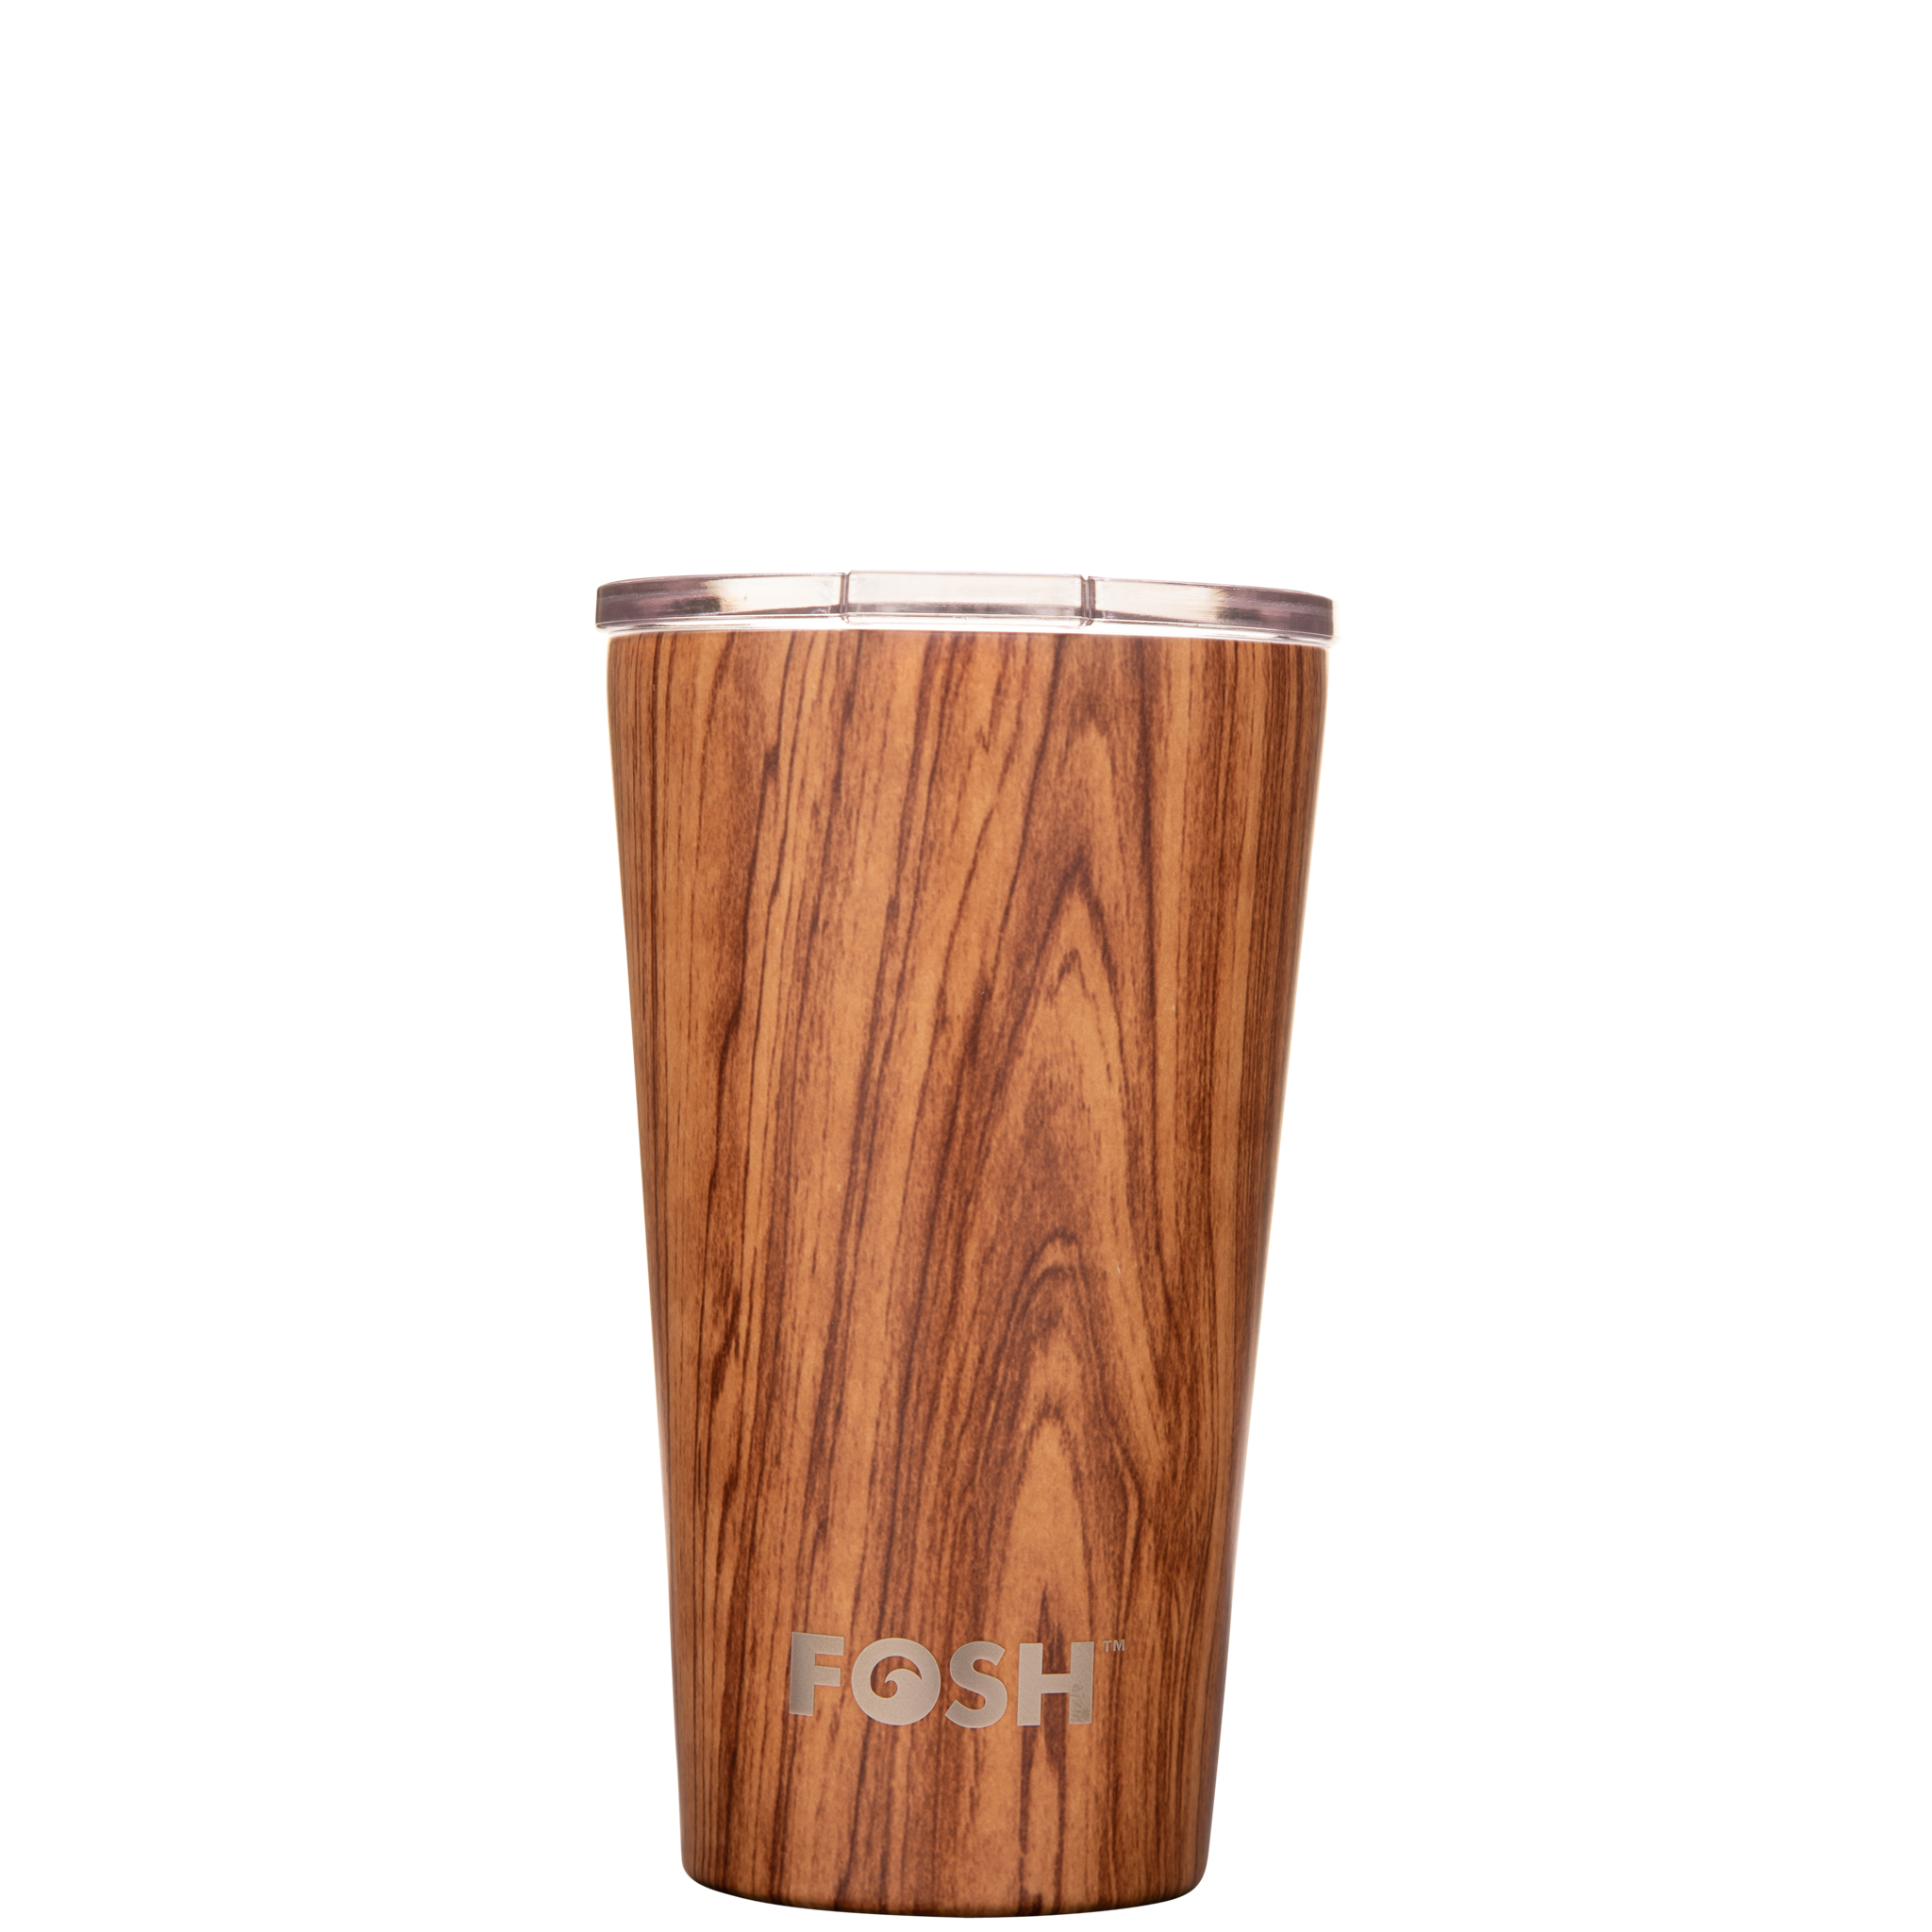 Stainless steel insulated coffee cup - Social wood